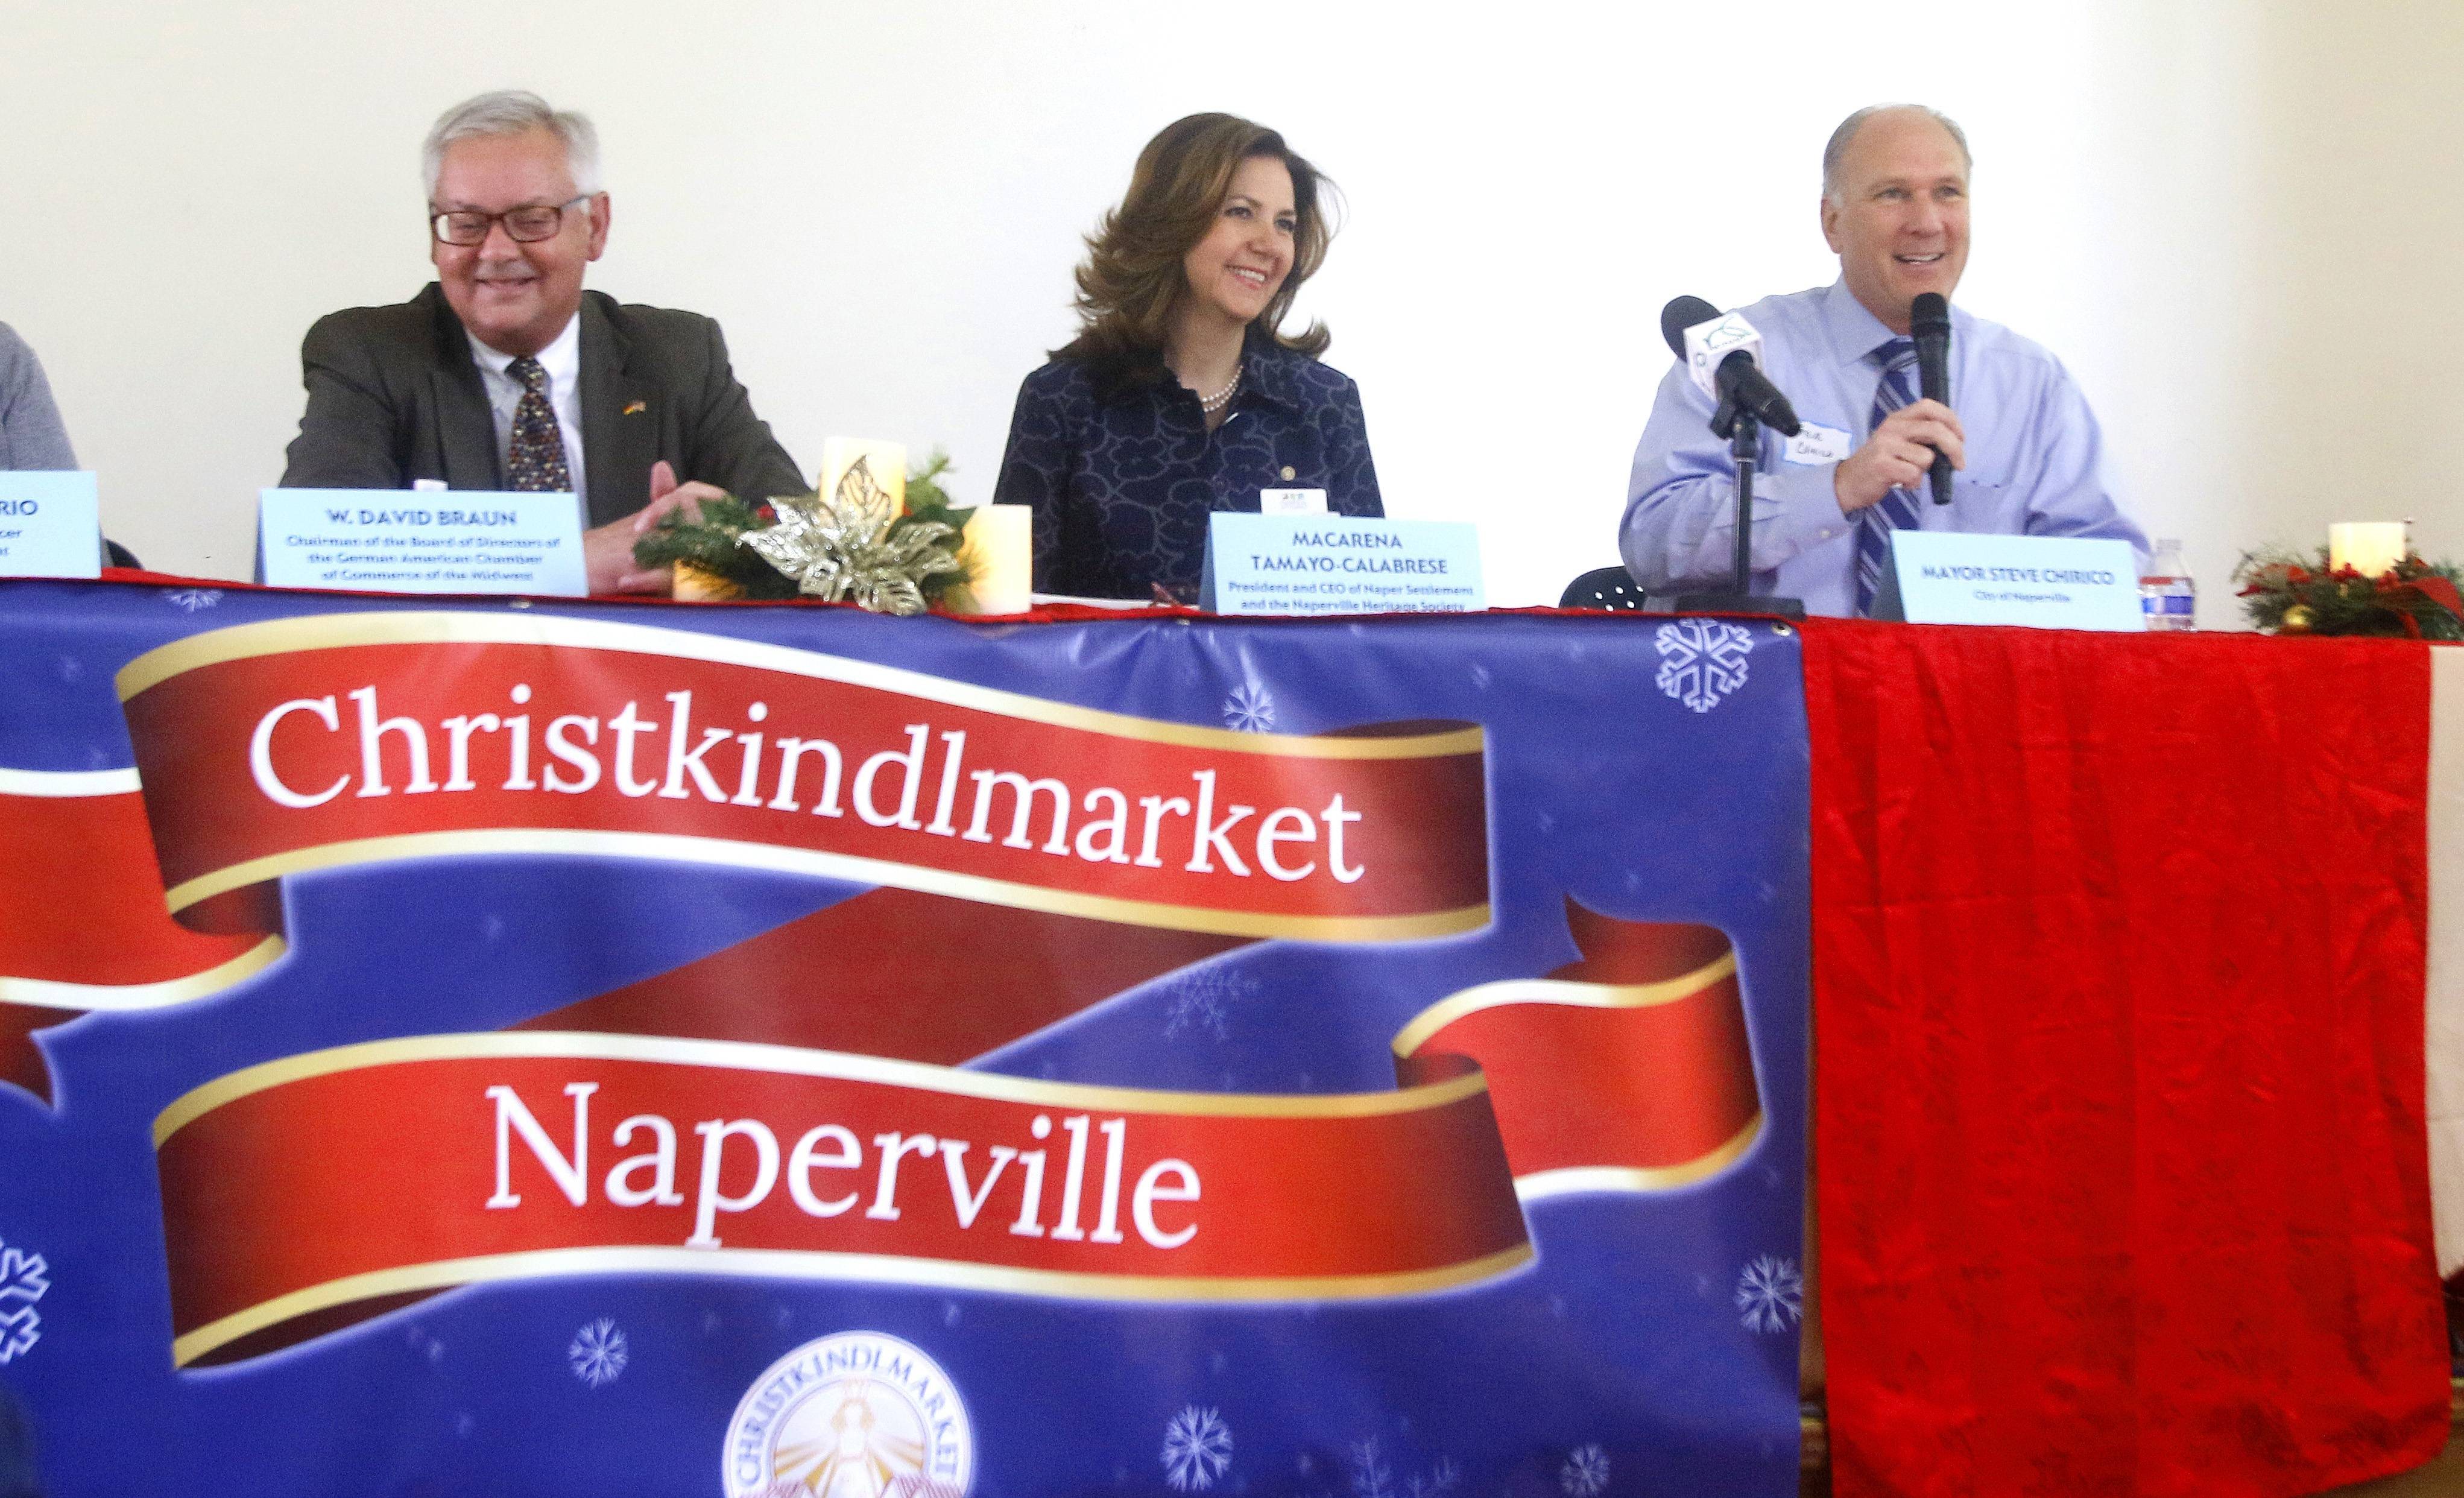 Naperville Mayor Steve Chirico, right, announces the opening of a Christkindlmarket suburban location beginning Nov. 25 at the Naper Settlement. Rena Tamayo-Calabrese, Naper Settlement president and CEO, and W. David Braun, chairman of the German American Chamber of Commerce of the Midwest, say the historical museum is the perfect venue for the festive market.